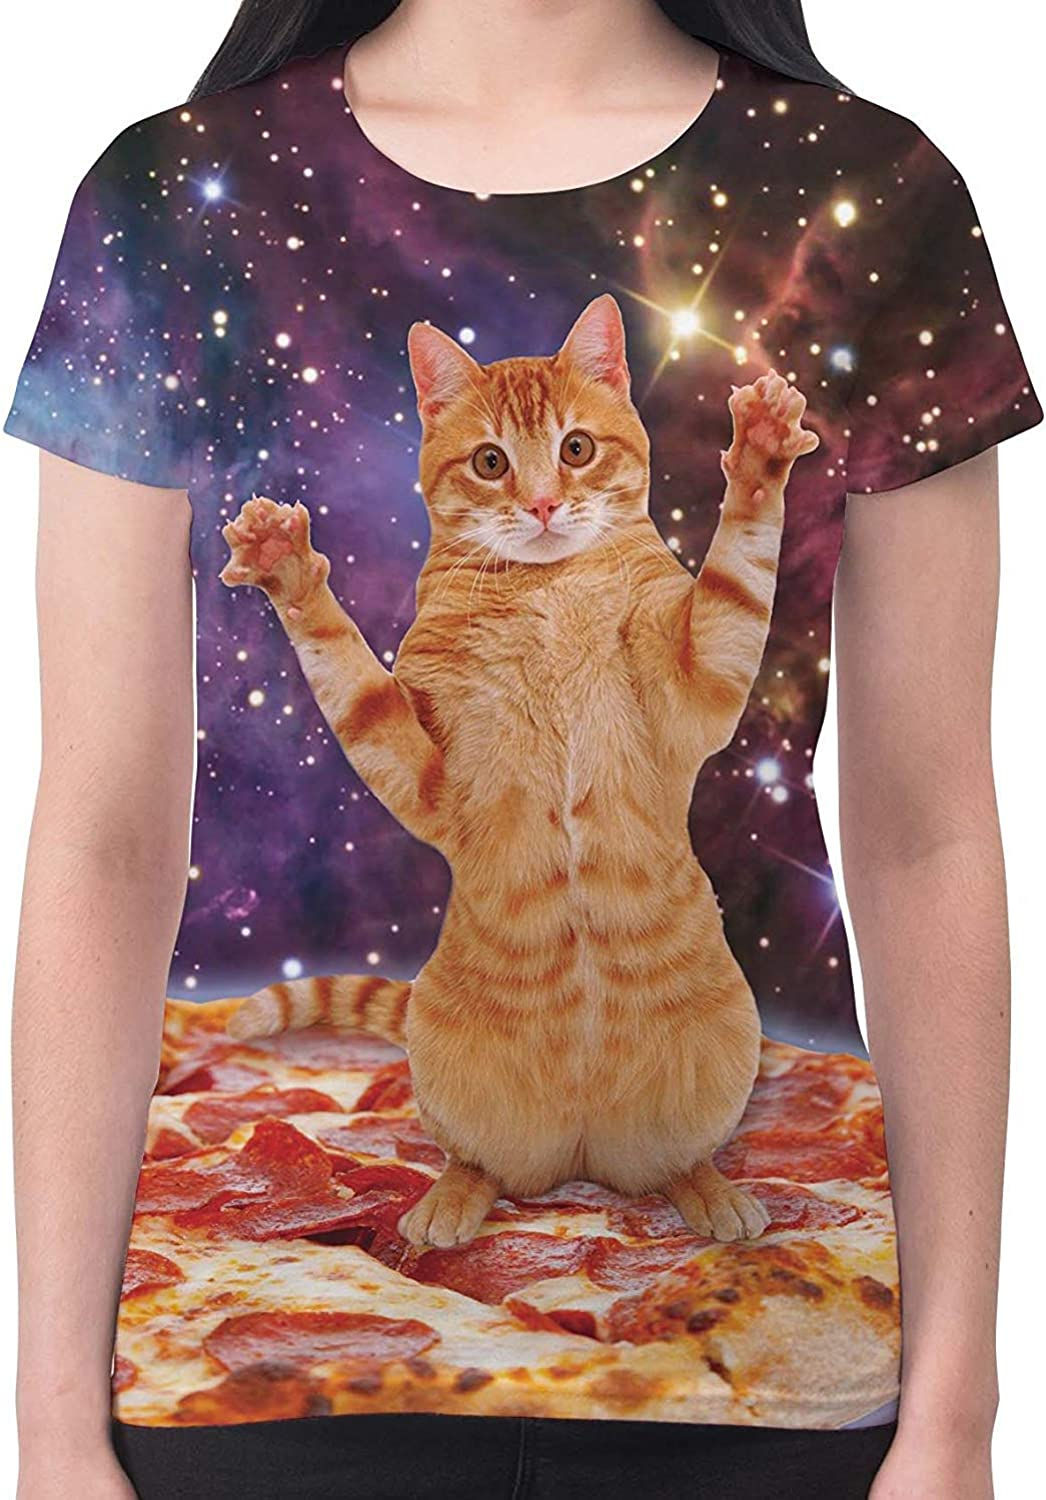 Cat Pizza Surf Beach Summer Funny Graphic Casual Tank Top 180 mv T Shirt S M L